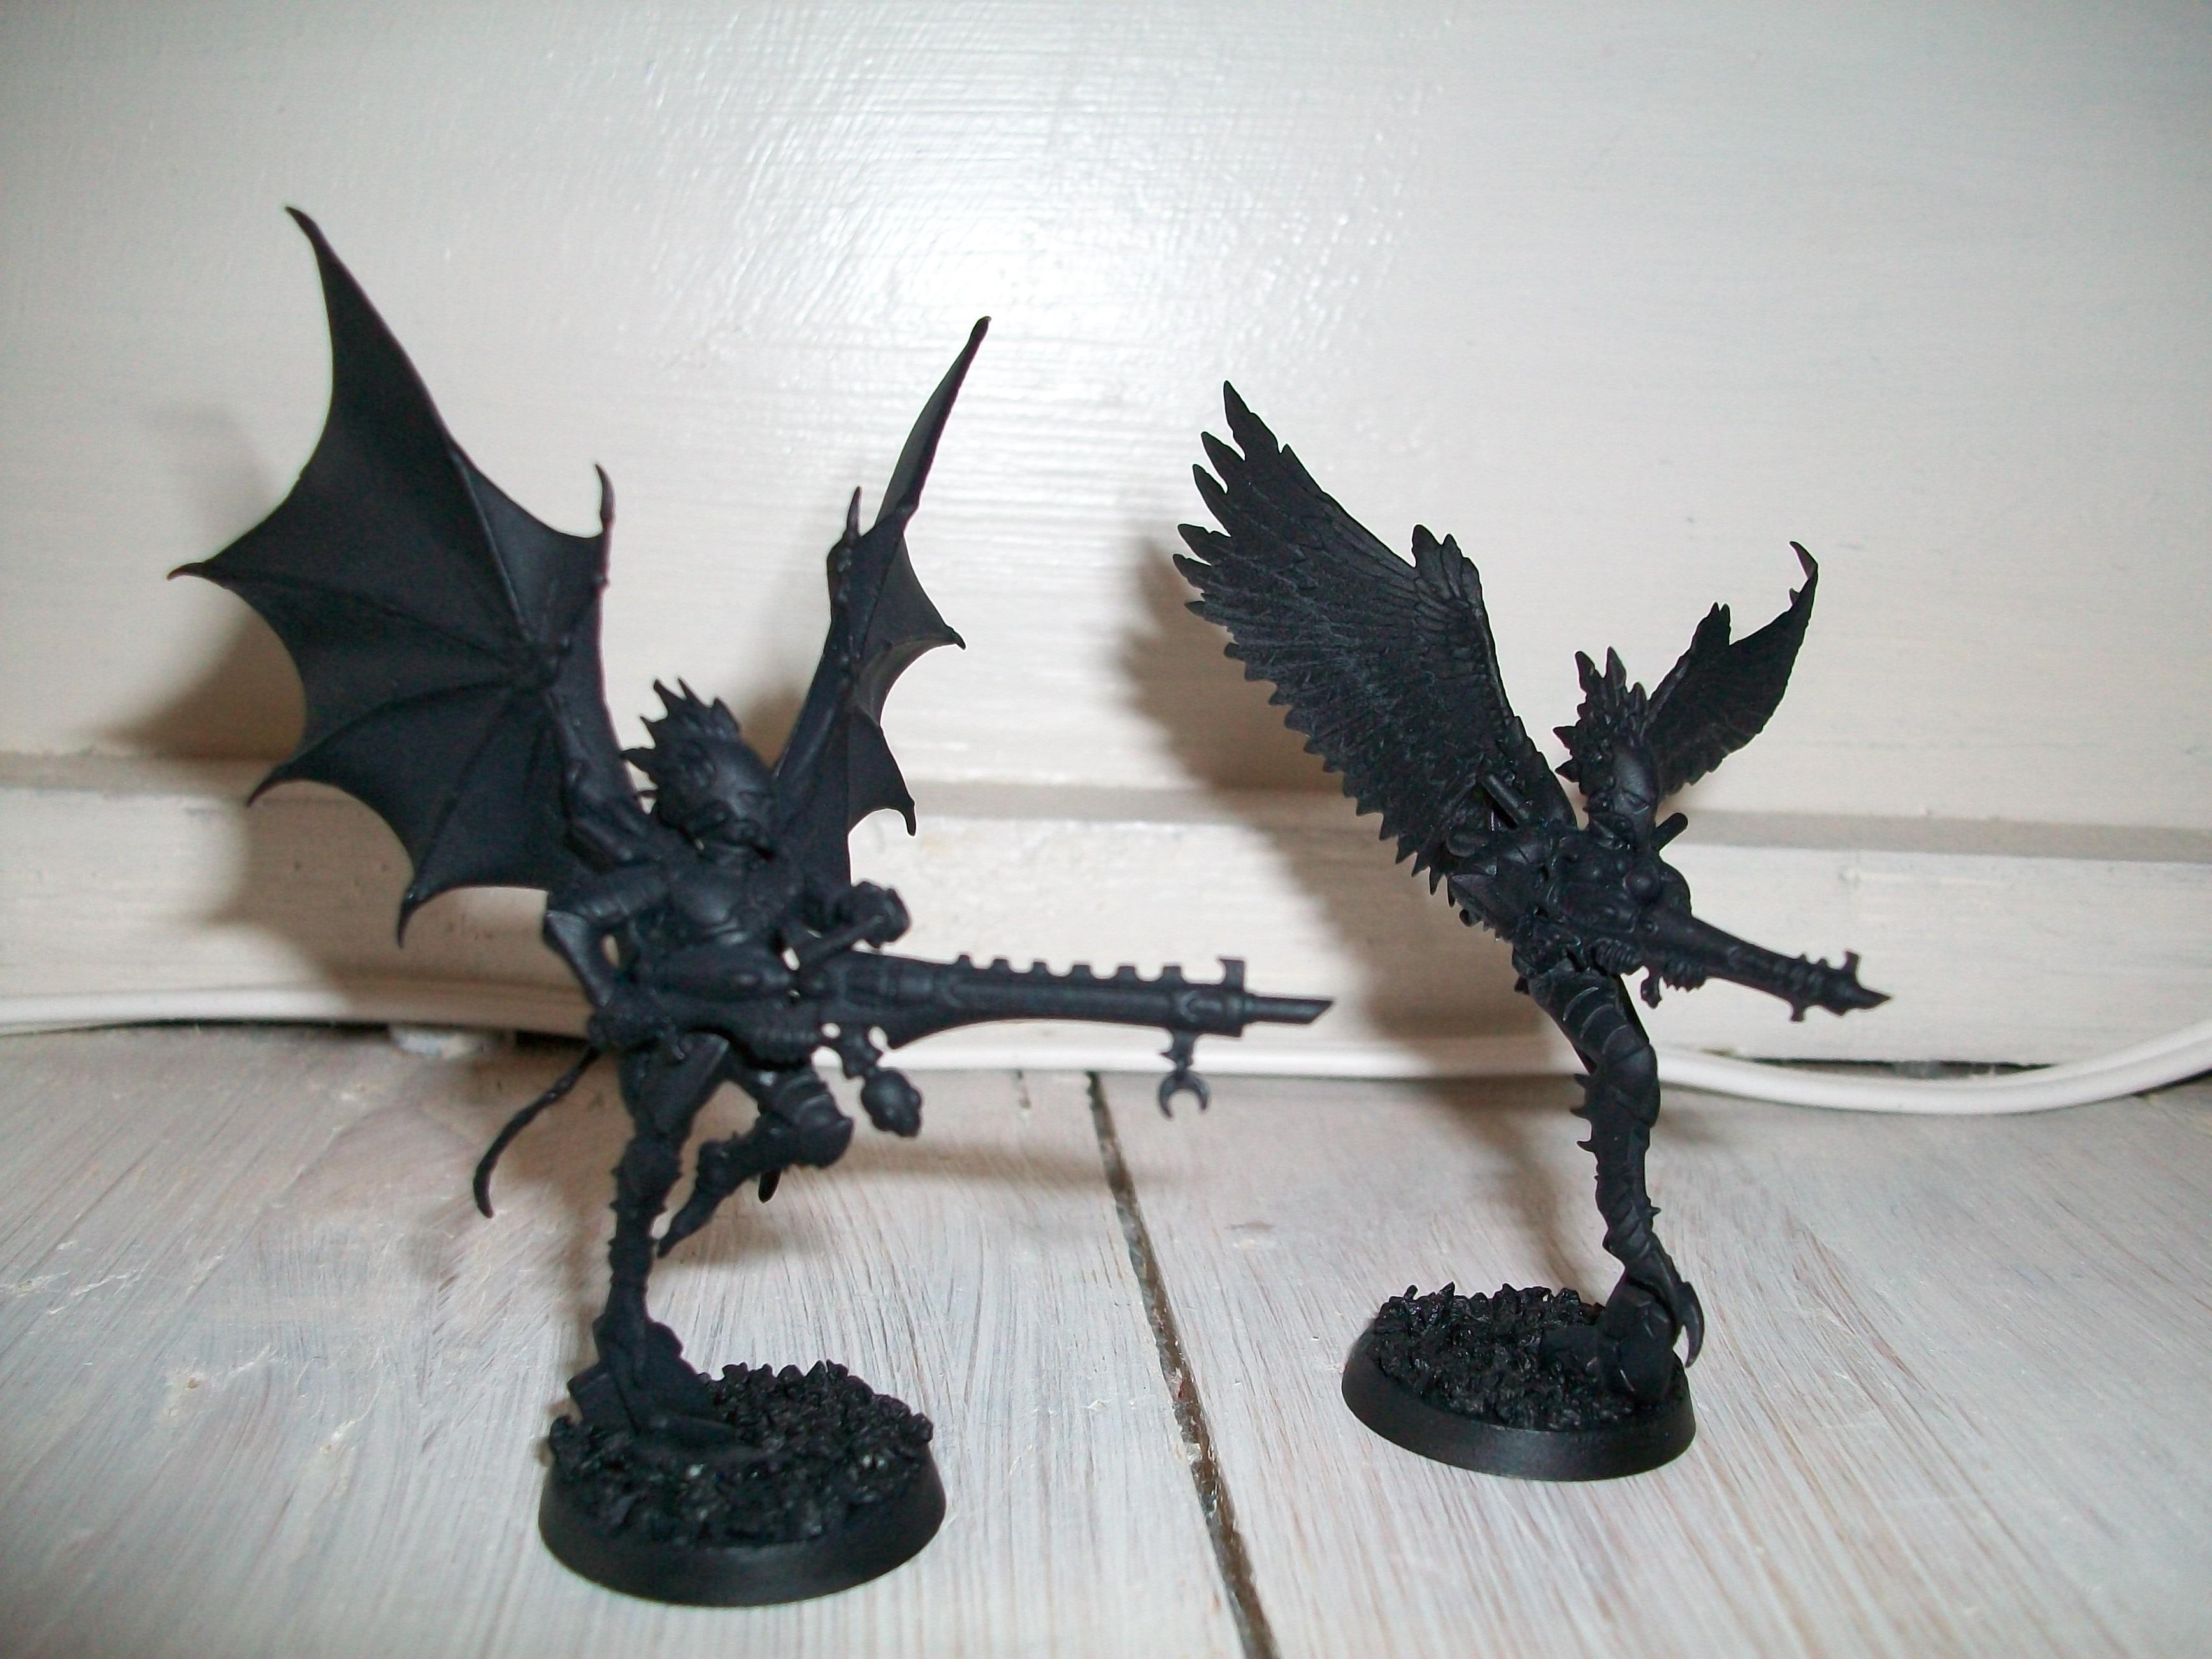 Scourges, Scourges